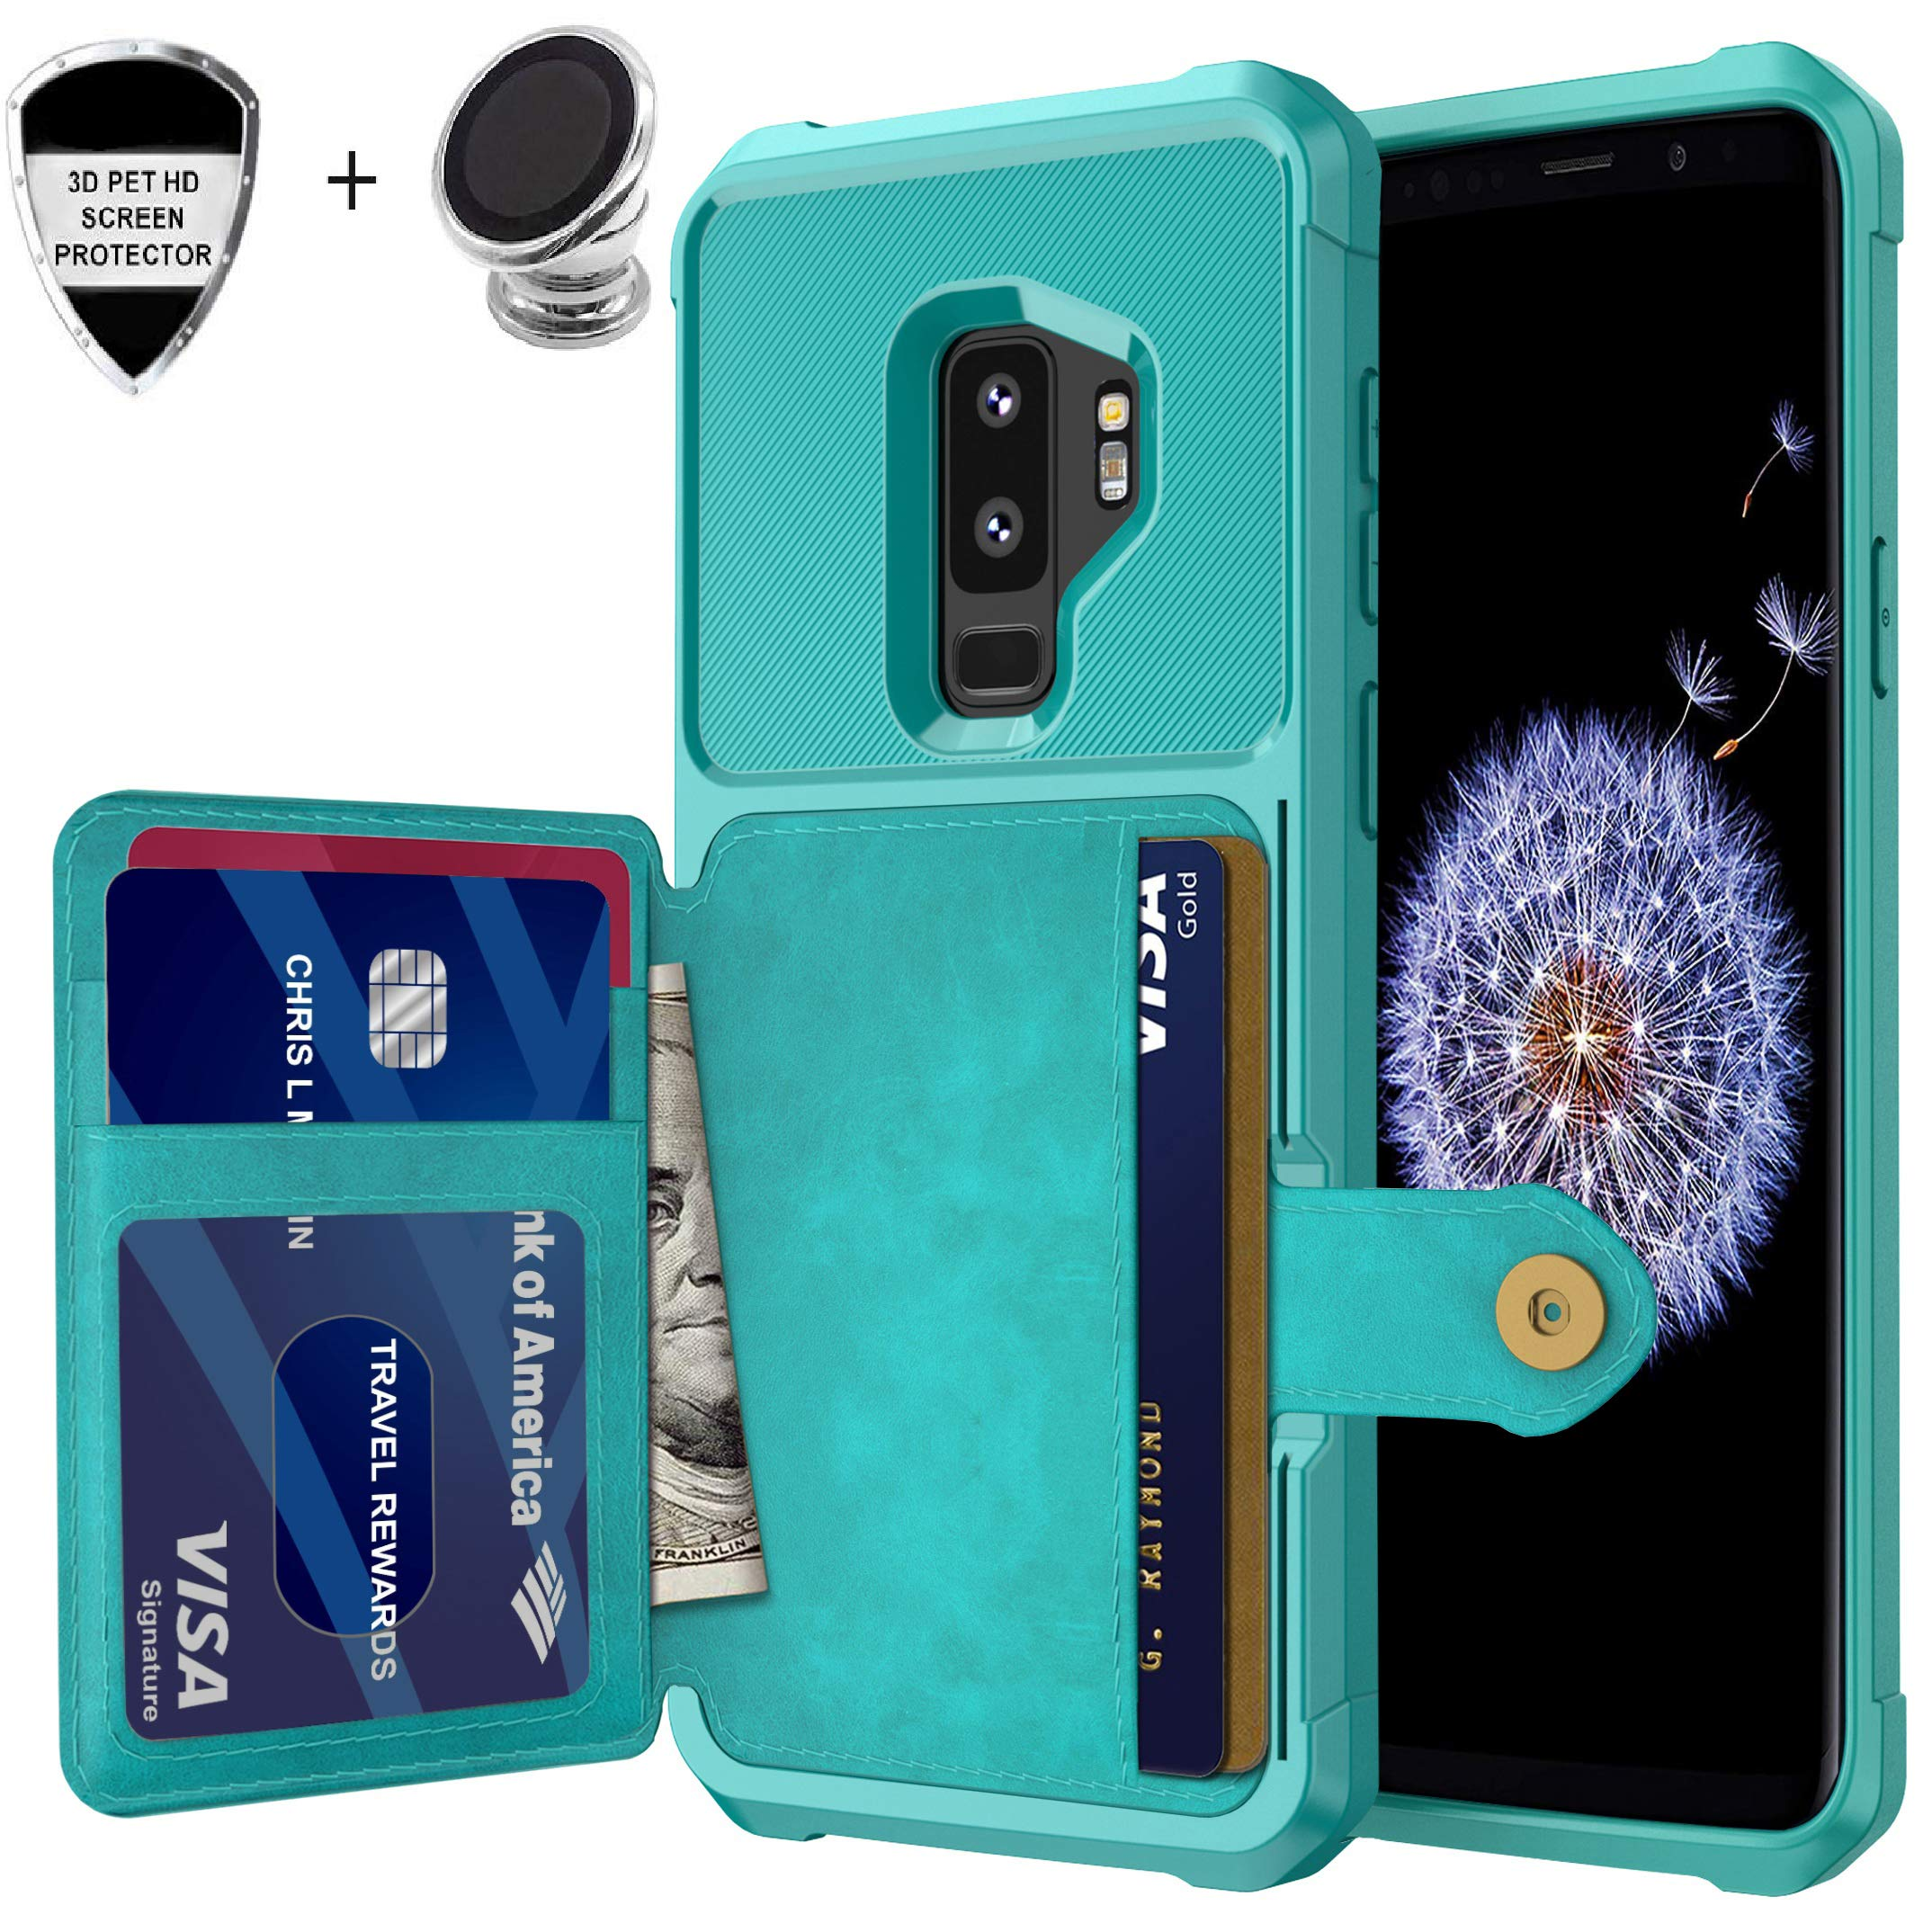 Galaxy S9 Plus Wallet Case, Sumsung S9+ Durable Shockproof Slim Magnetic Flip Leather Card Slots Holder Kickstand Protective Case Cover Included Car Phone Mount